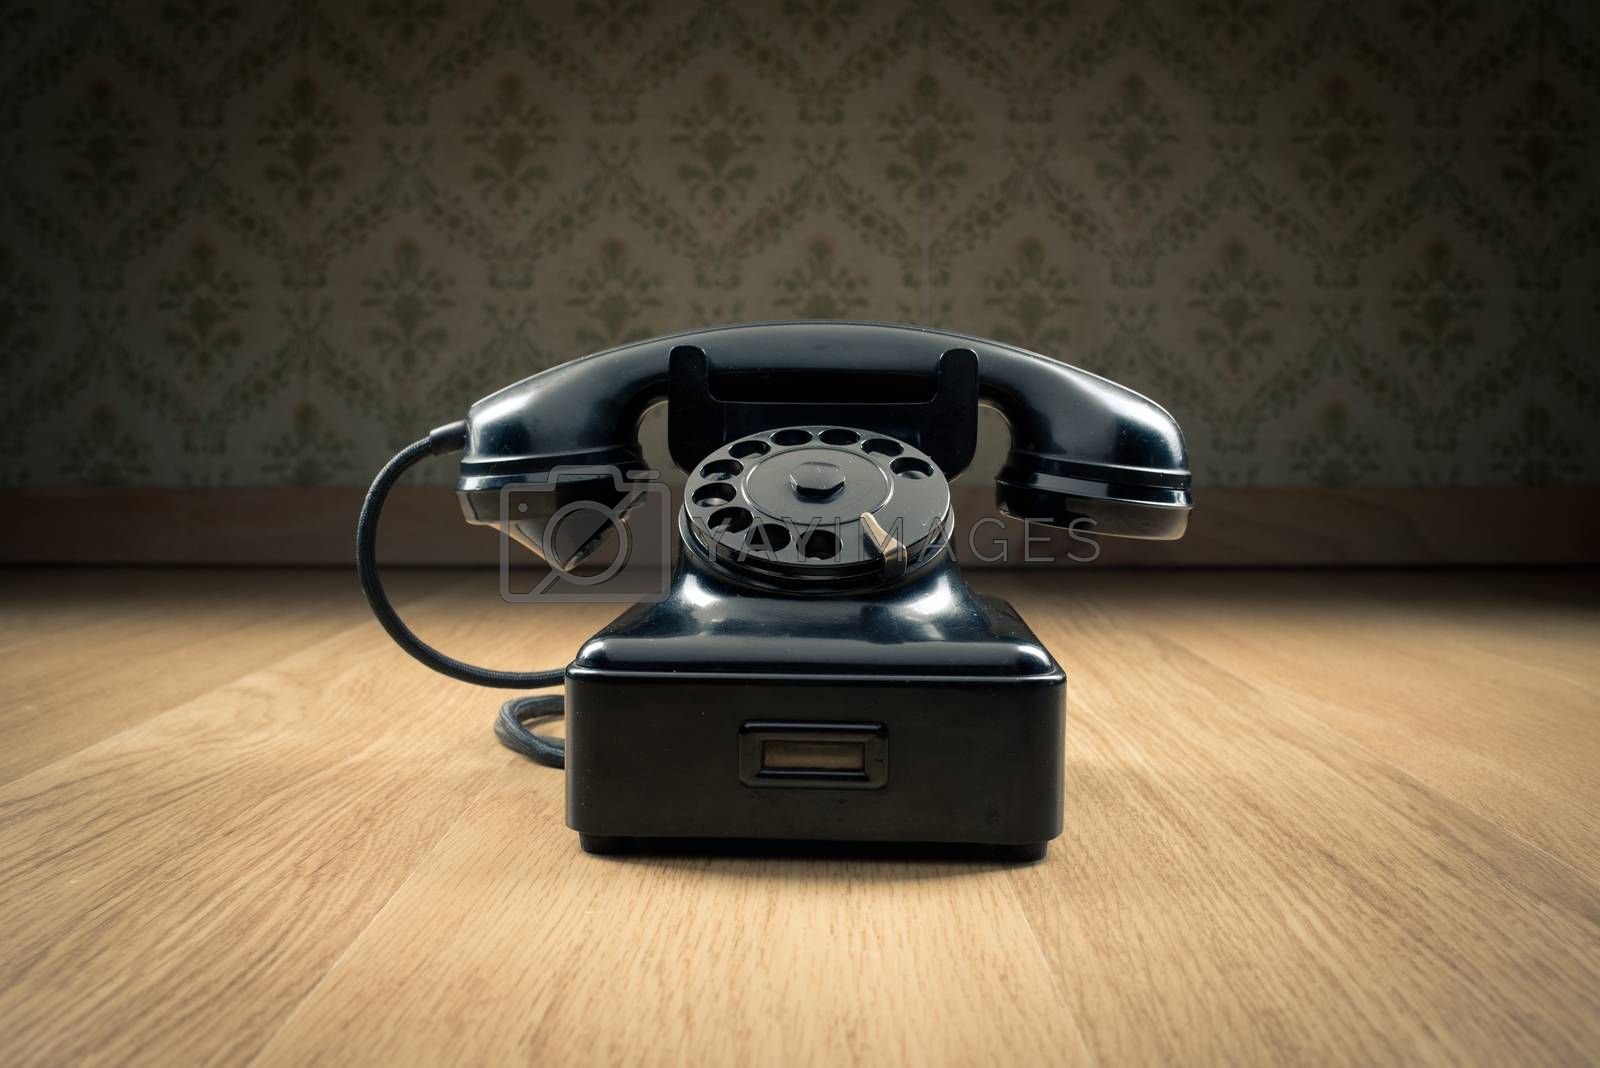 Black 1950s style phone on hardwood floor and vintage wallpaper on background.